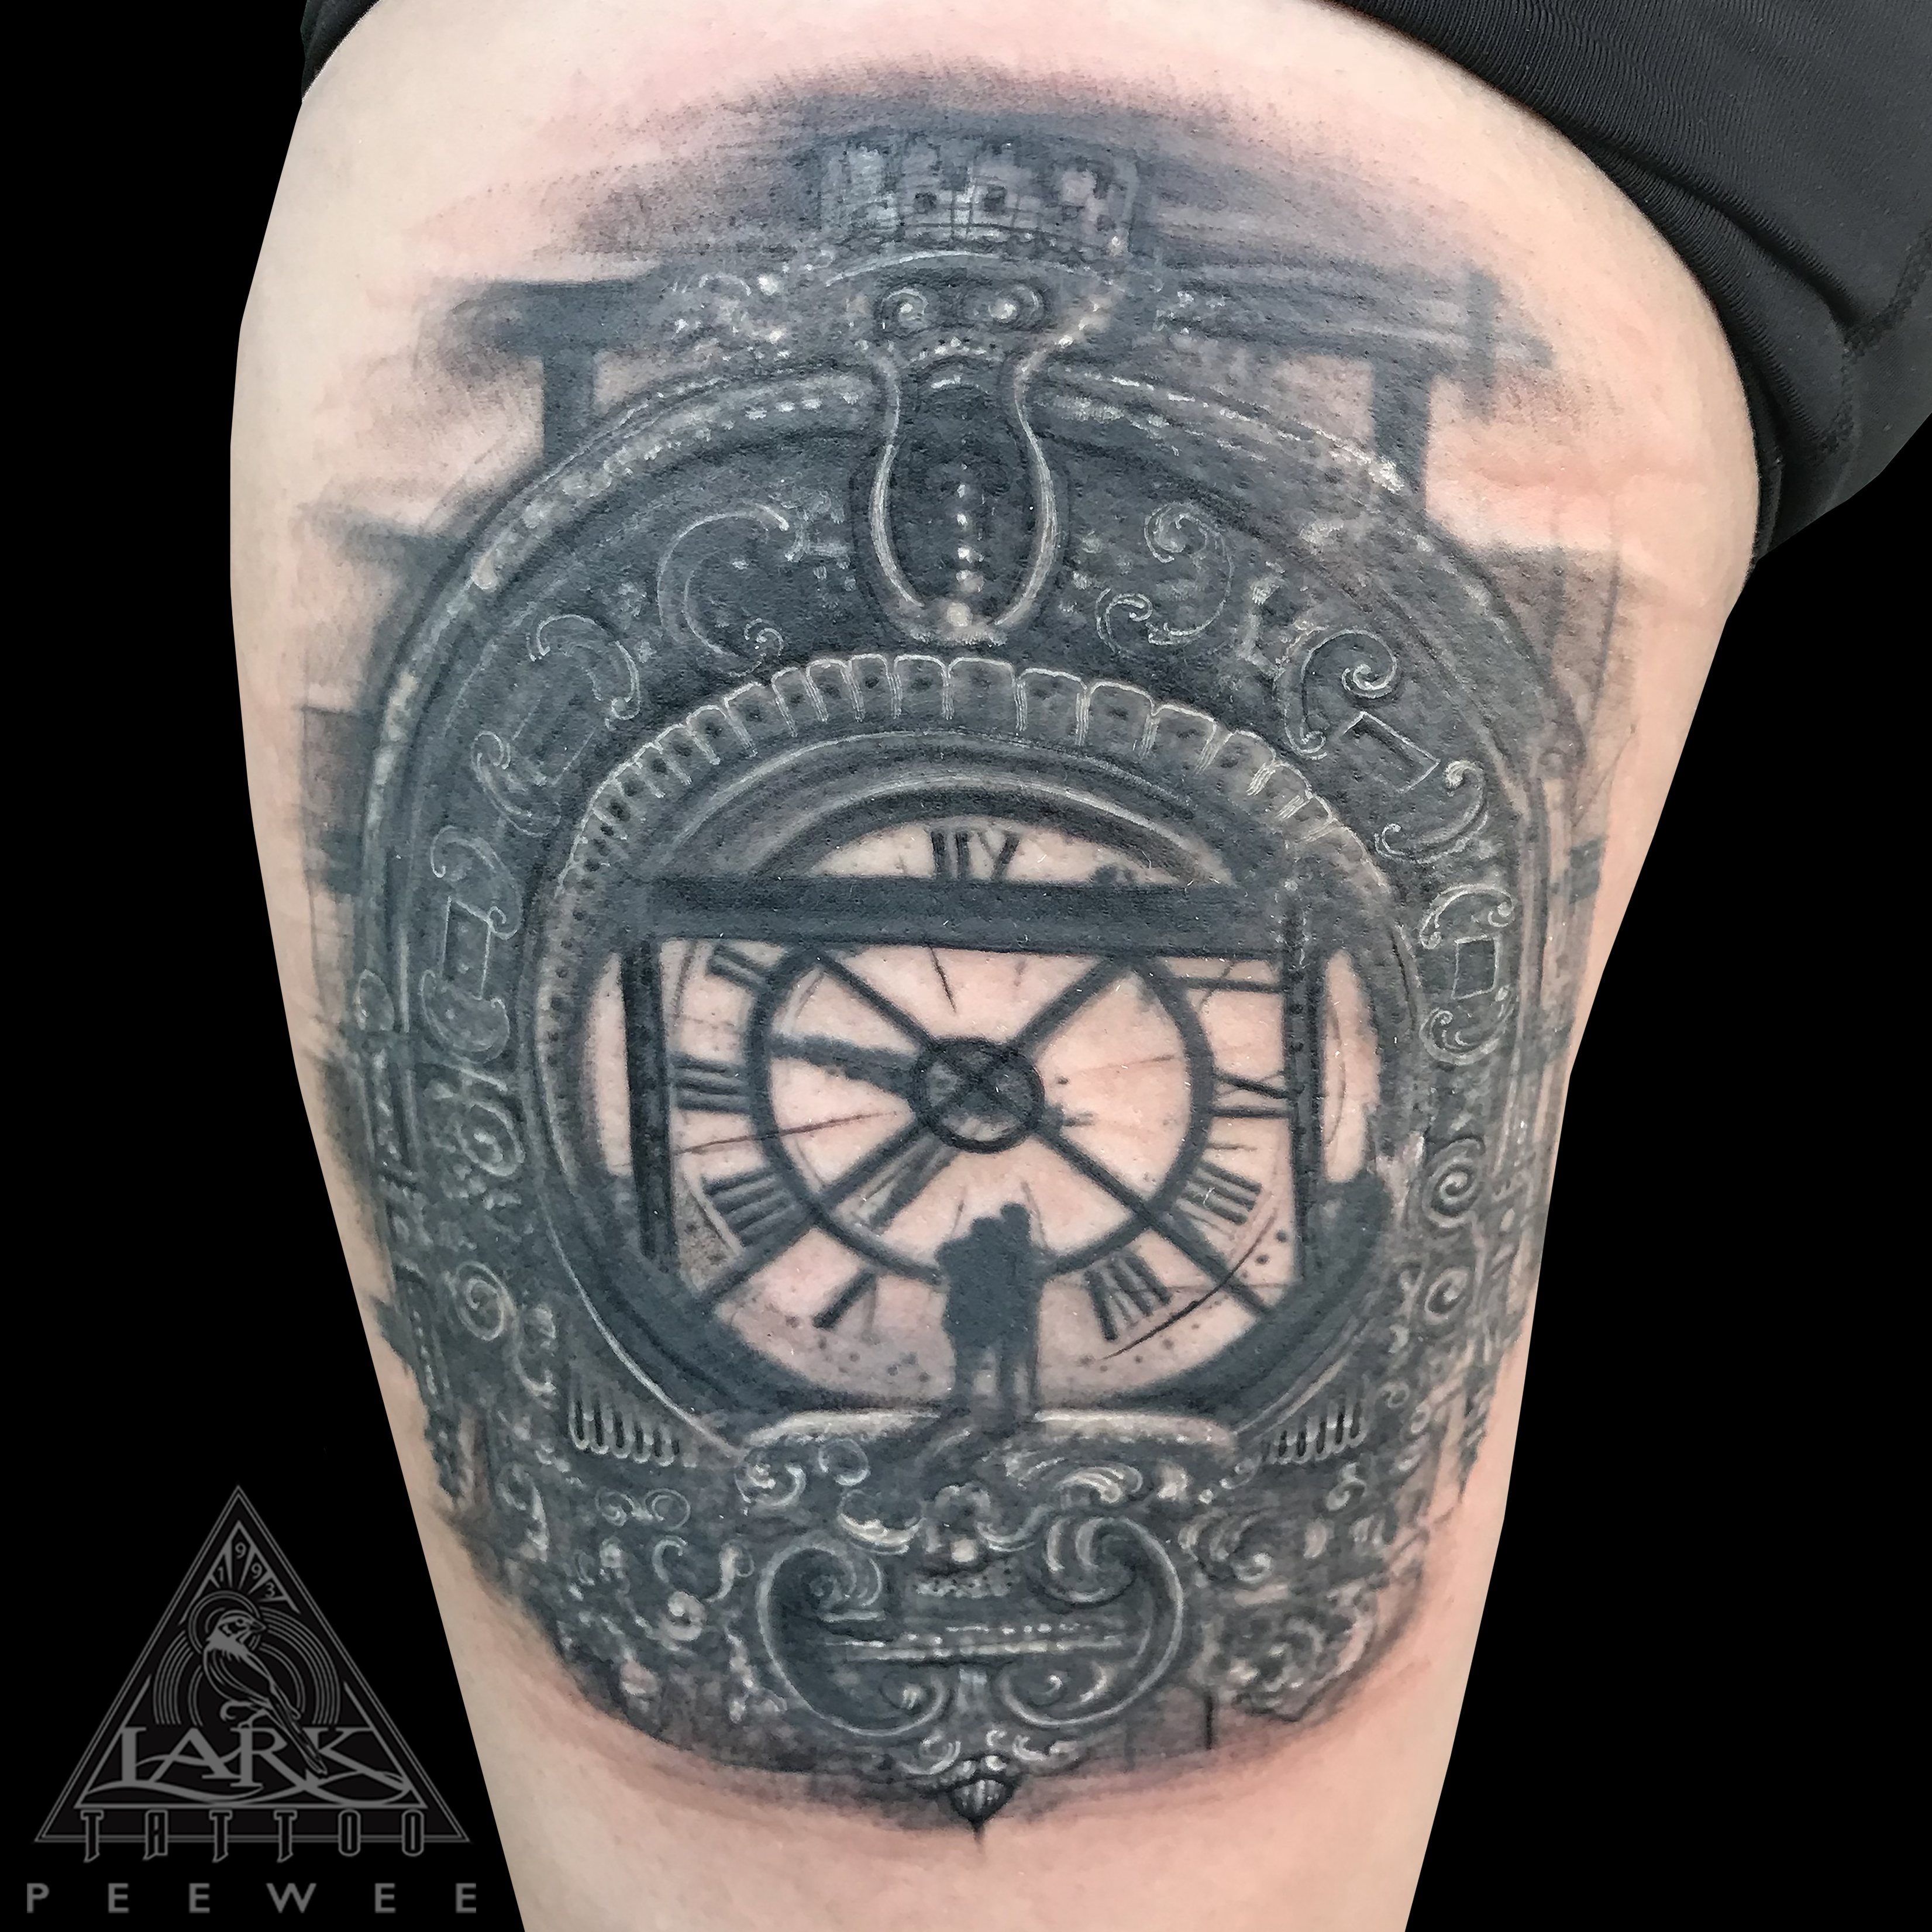 blackandgreytattoo, blackandgraytattoo, bngtattoo, bnginksociety, tattoosocial, pocketwatch, pocketwatchtattoo, scroll, scrollwork, scrollworktattoo, couple, coupletattoo, tattoo, tattoos, tat, tats, tatts, tatted, tattedup, tattoist, tattooed, inked, inkedup, ink, tattoooftheday, amazingink, bodyart, larktattoo, larktattoos, larktattoowestbury, westbury, longisland, NY, NewYork, usa, art